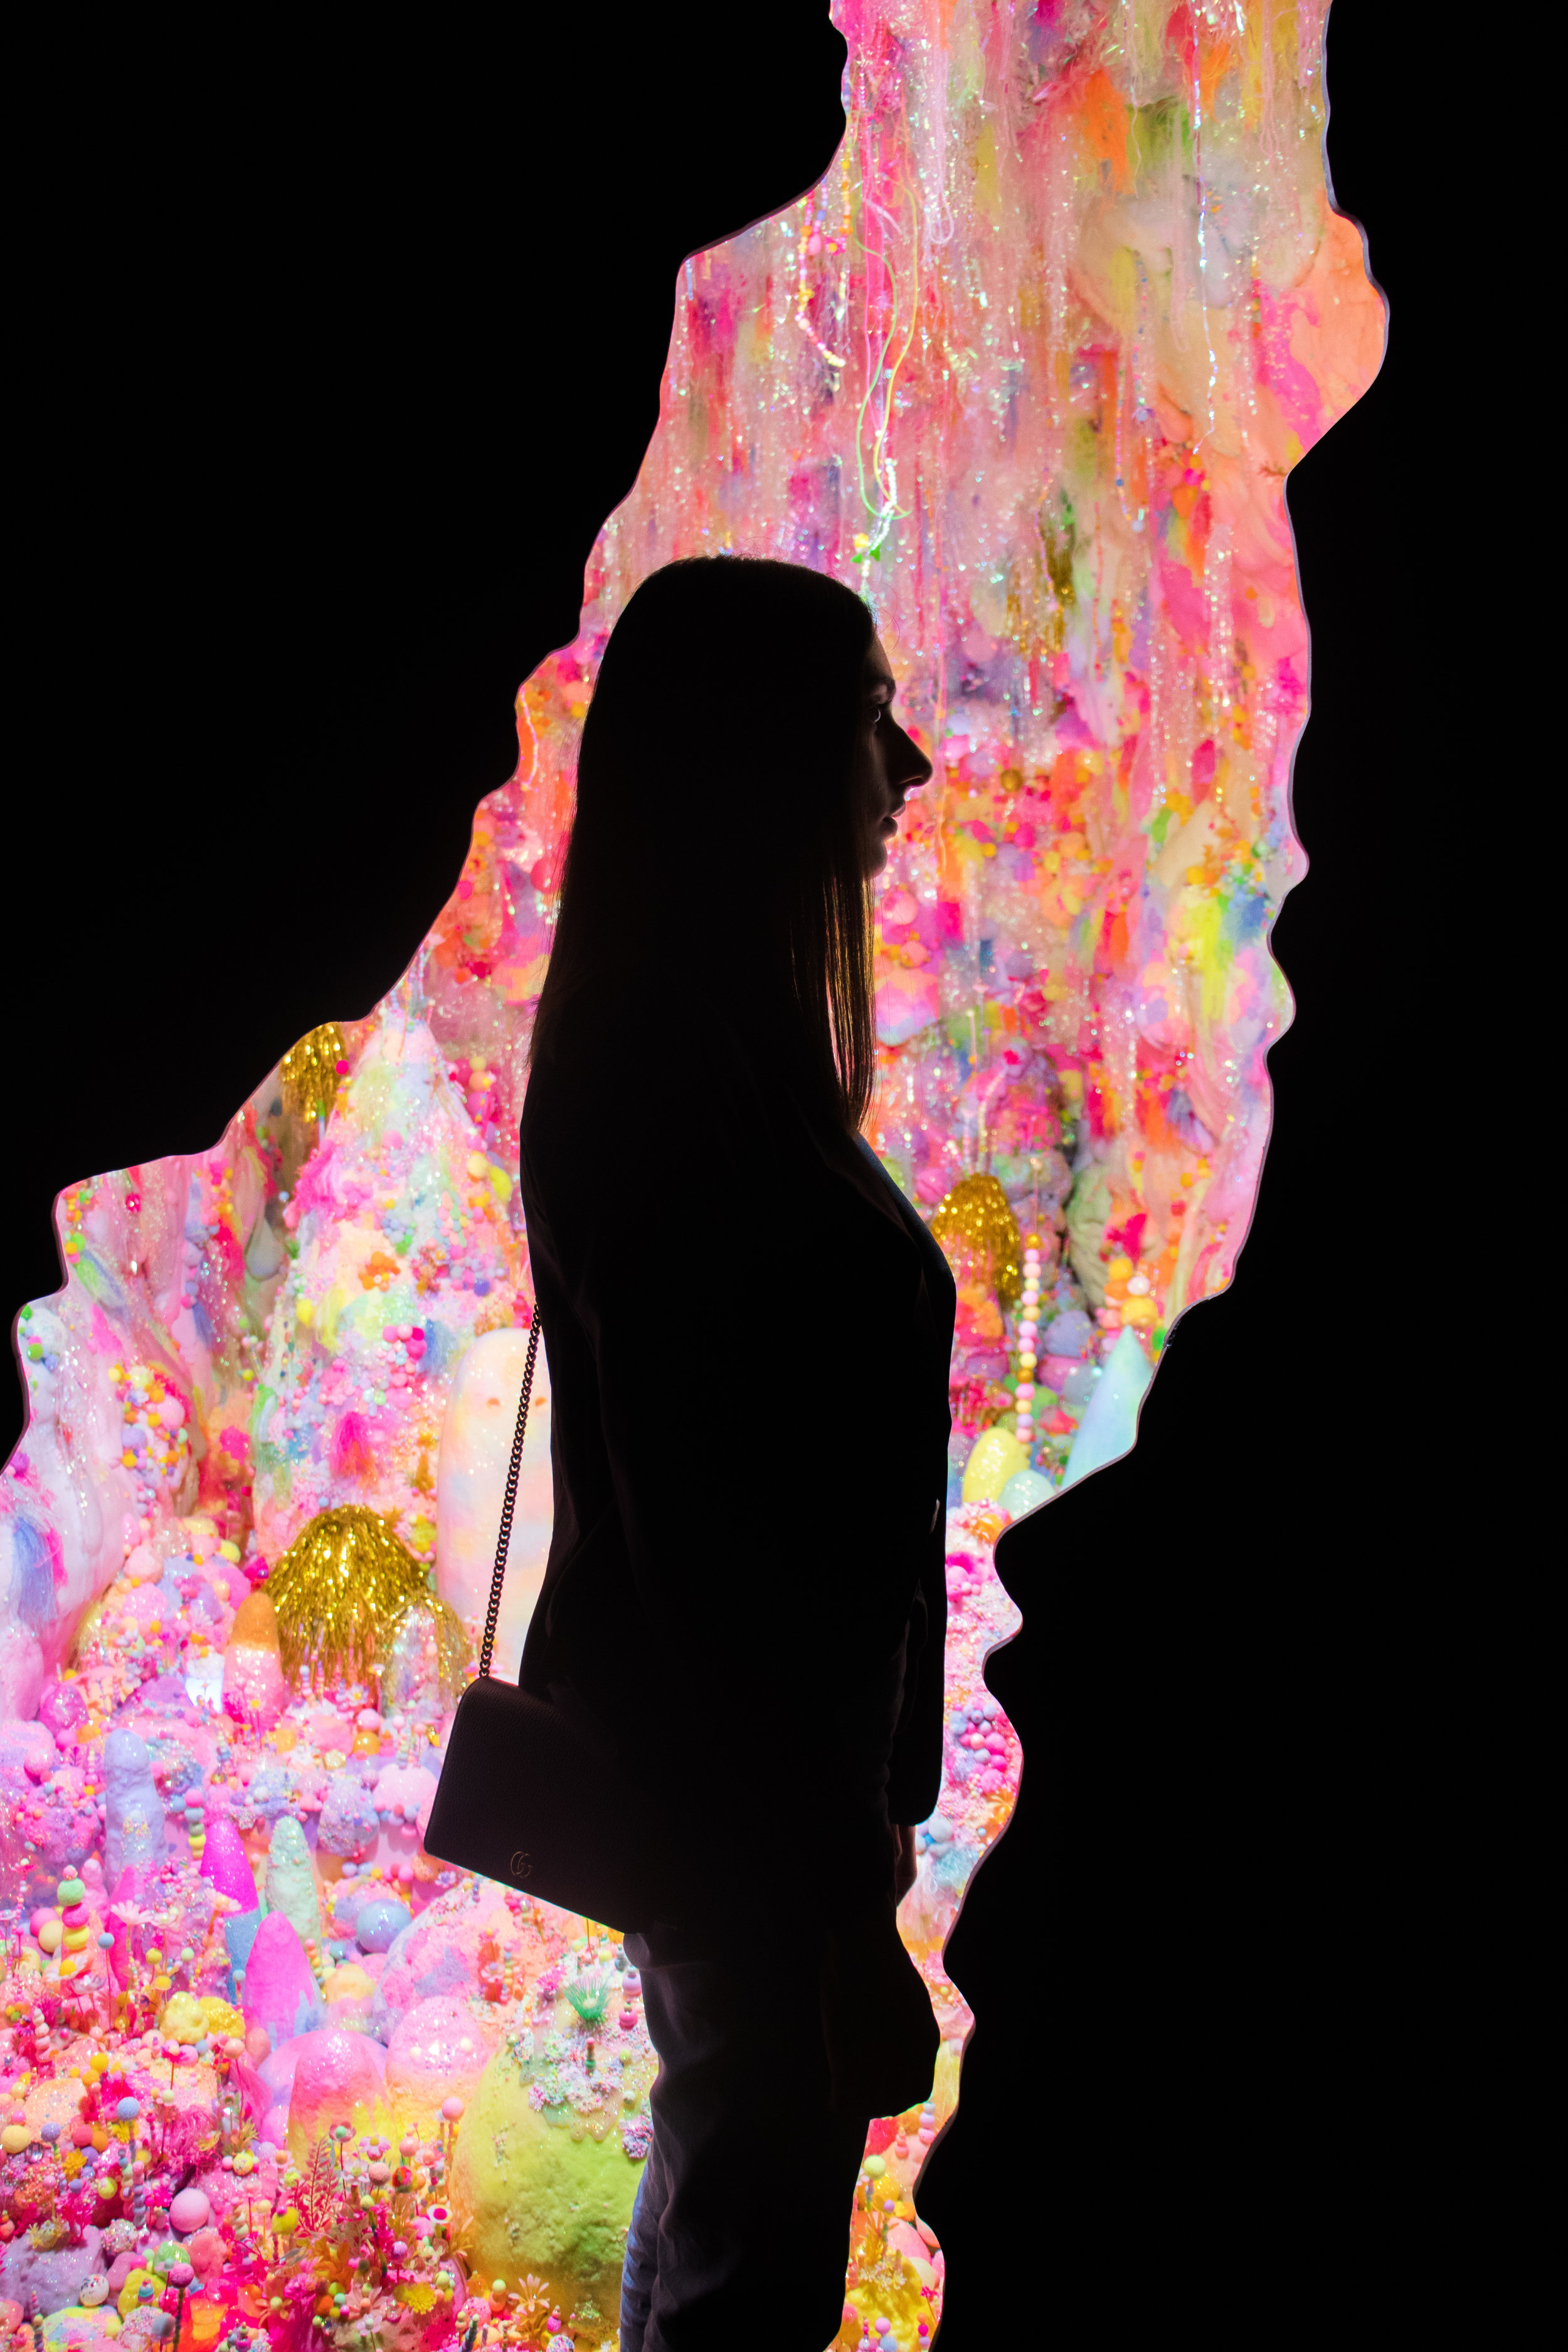 2018 Adelaide Biennial of Australian Art: Divided Worlds featuring Pip & Pop,Darkness will disappear, magic light gonna take you for a ride,Art Gallery of South Australia, Adelaide